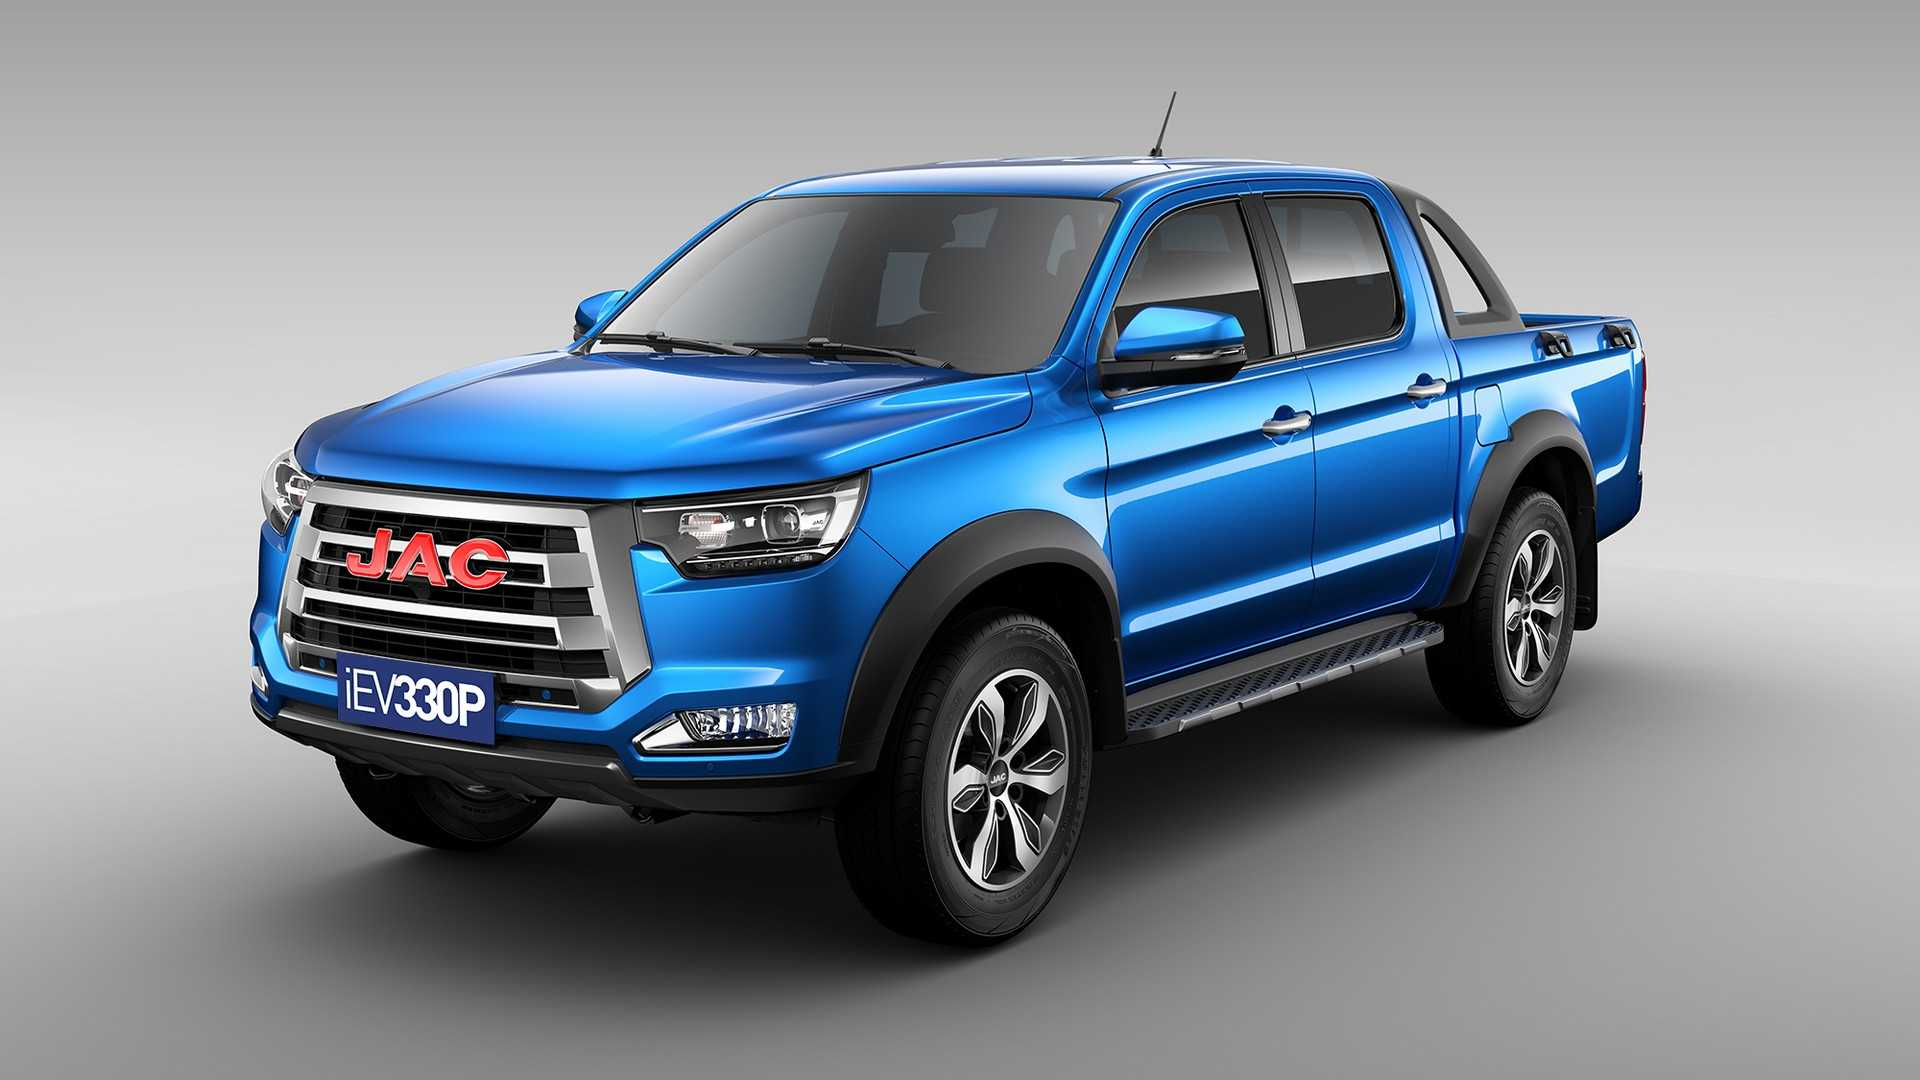 There's A Production Electric Pickup Truck, But Not For The U.S.